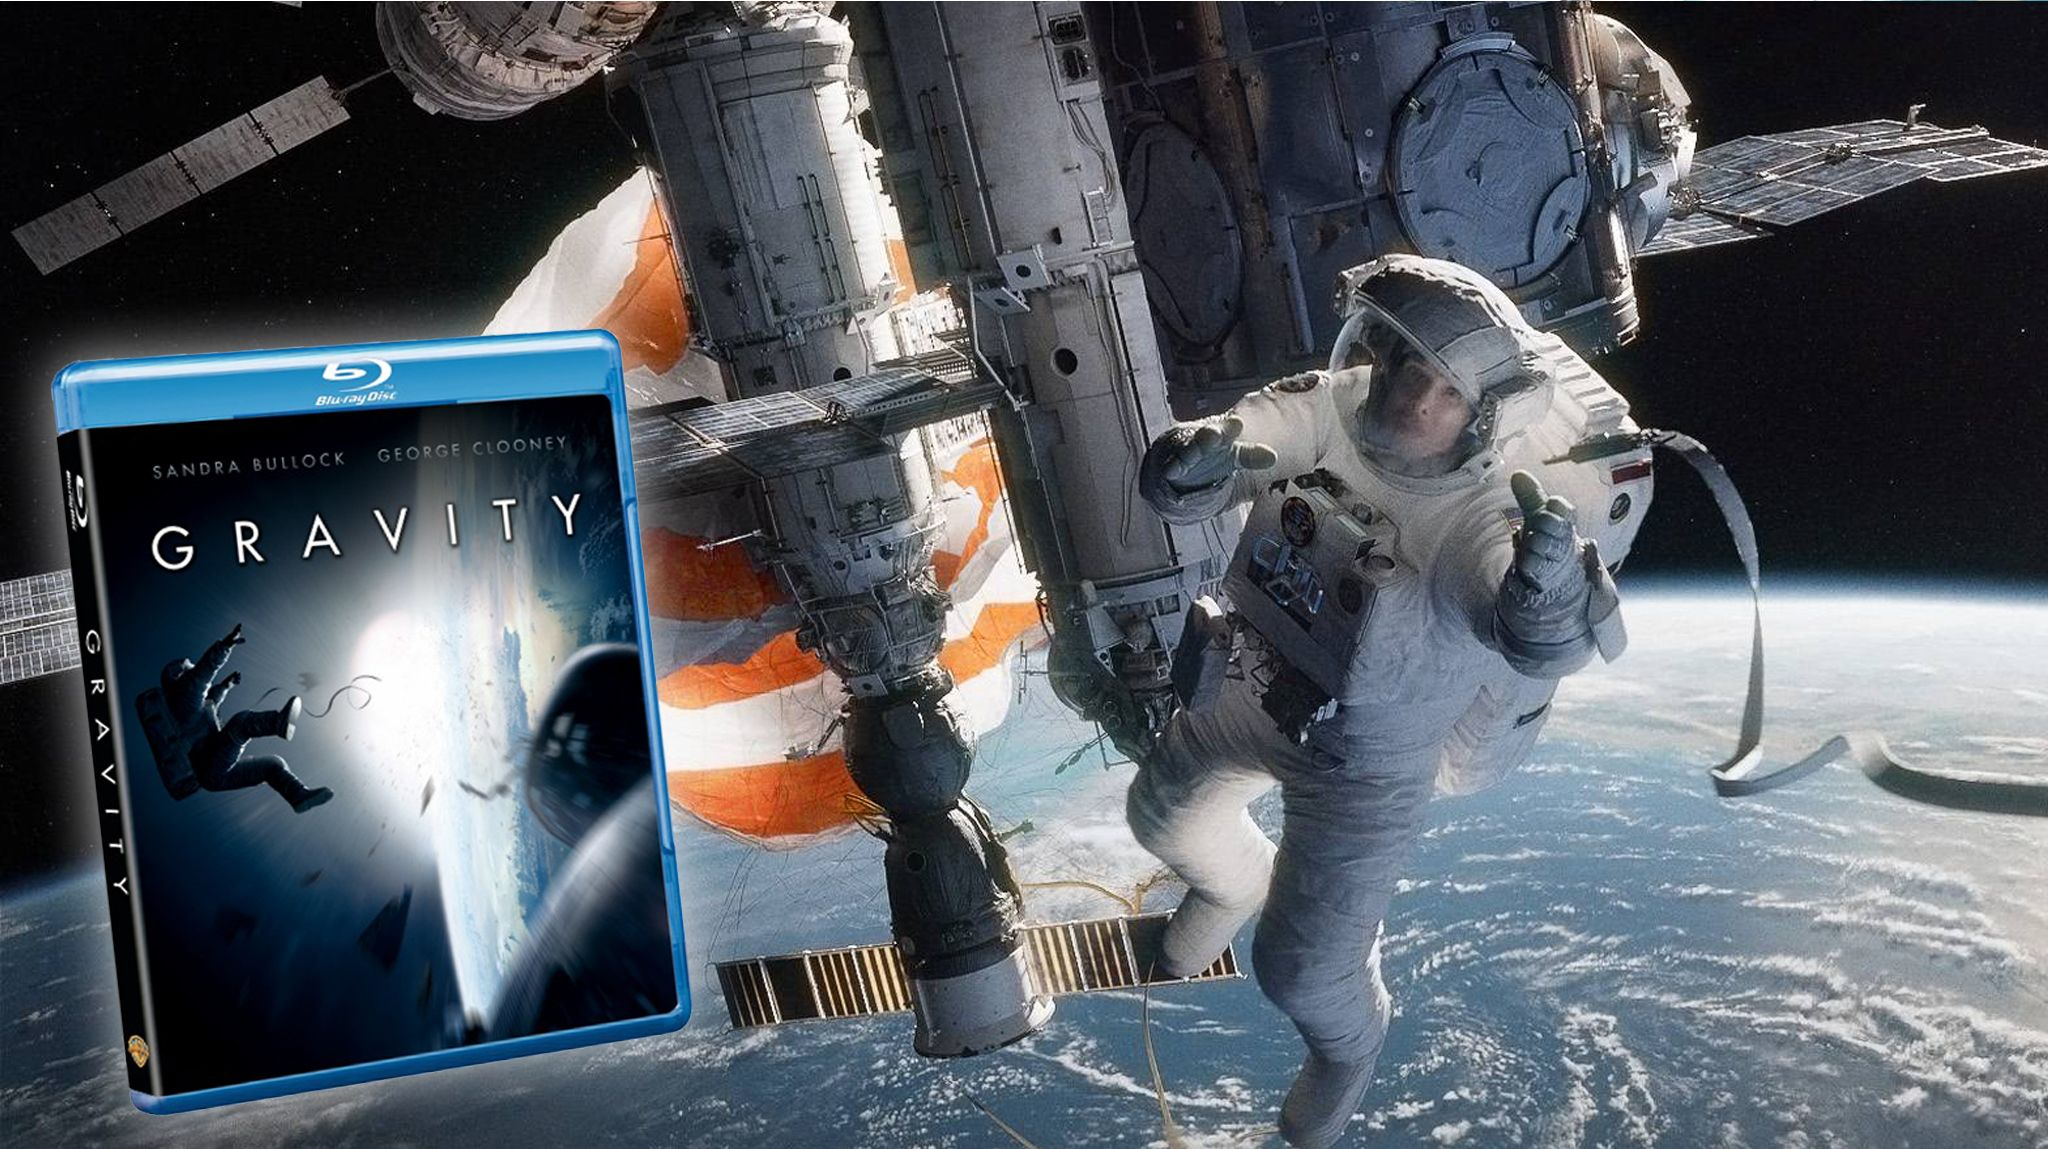 This Month On DVD: Gravity